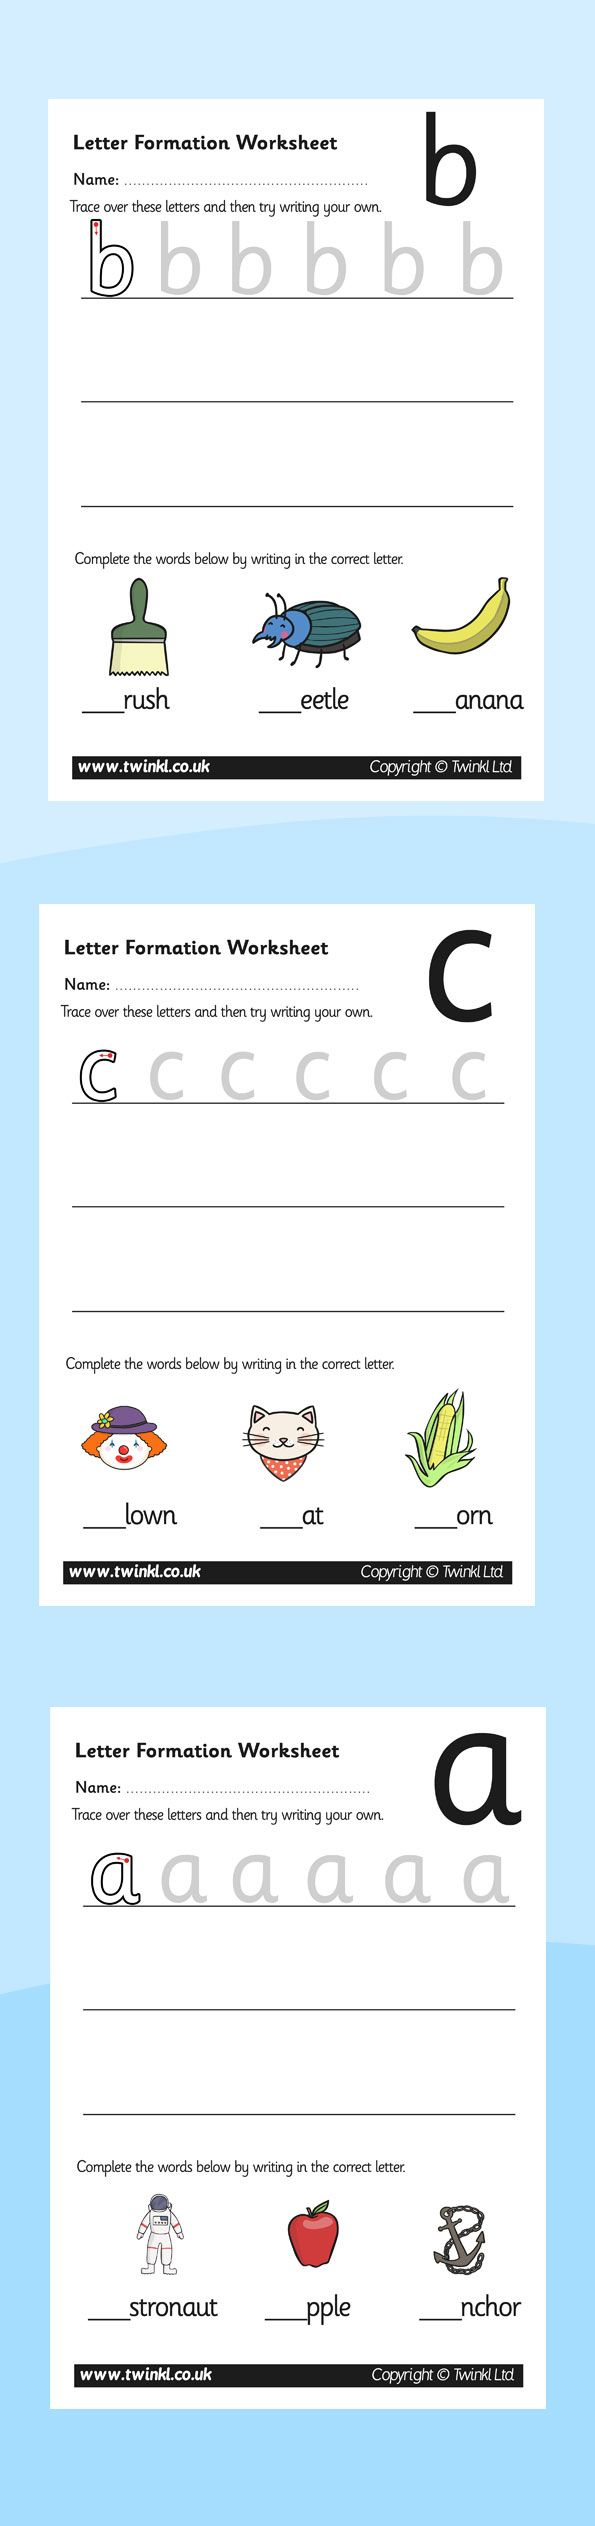 Free Worksheet Journey To The Center Of The Earth Worksheet 1000 images about writing worksheets on pinterest sight word literacy and miss kindergarten